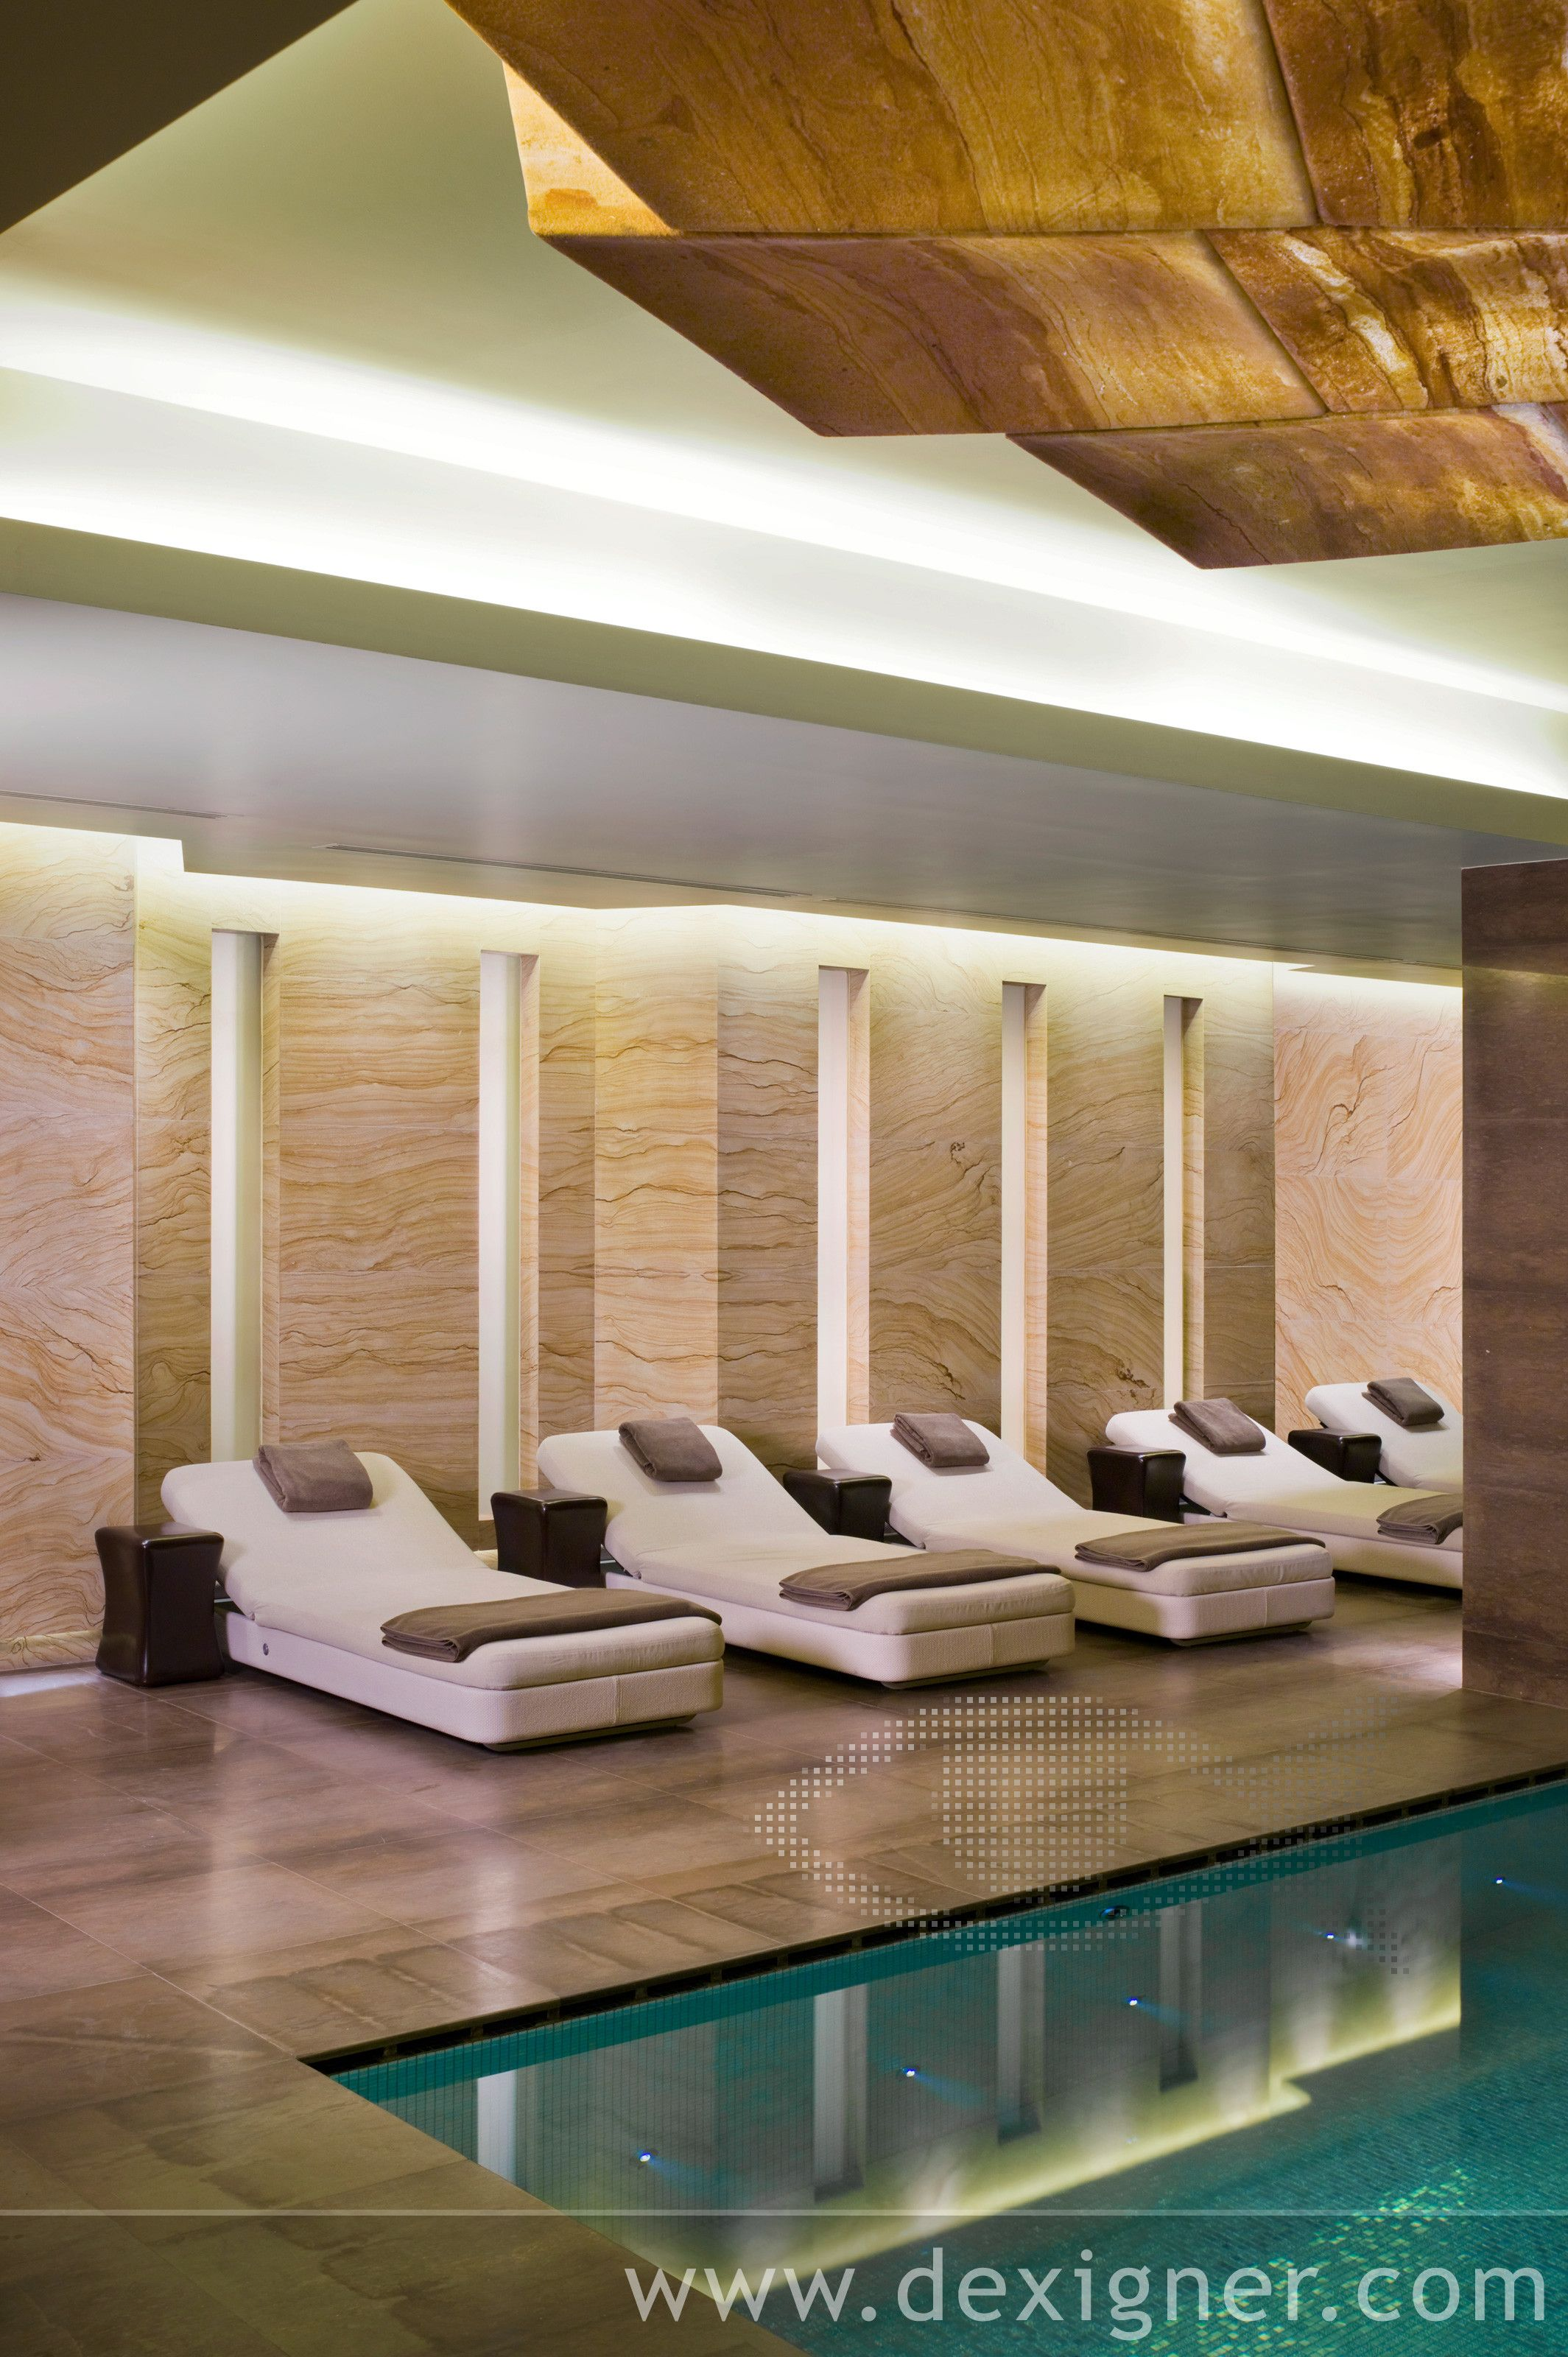 Hirsch bedner associates hba espa spa located in the istanbul edition hotel